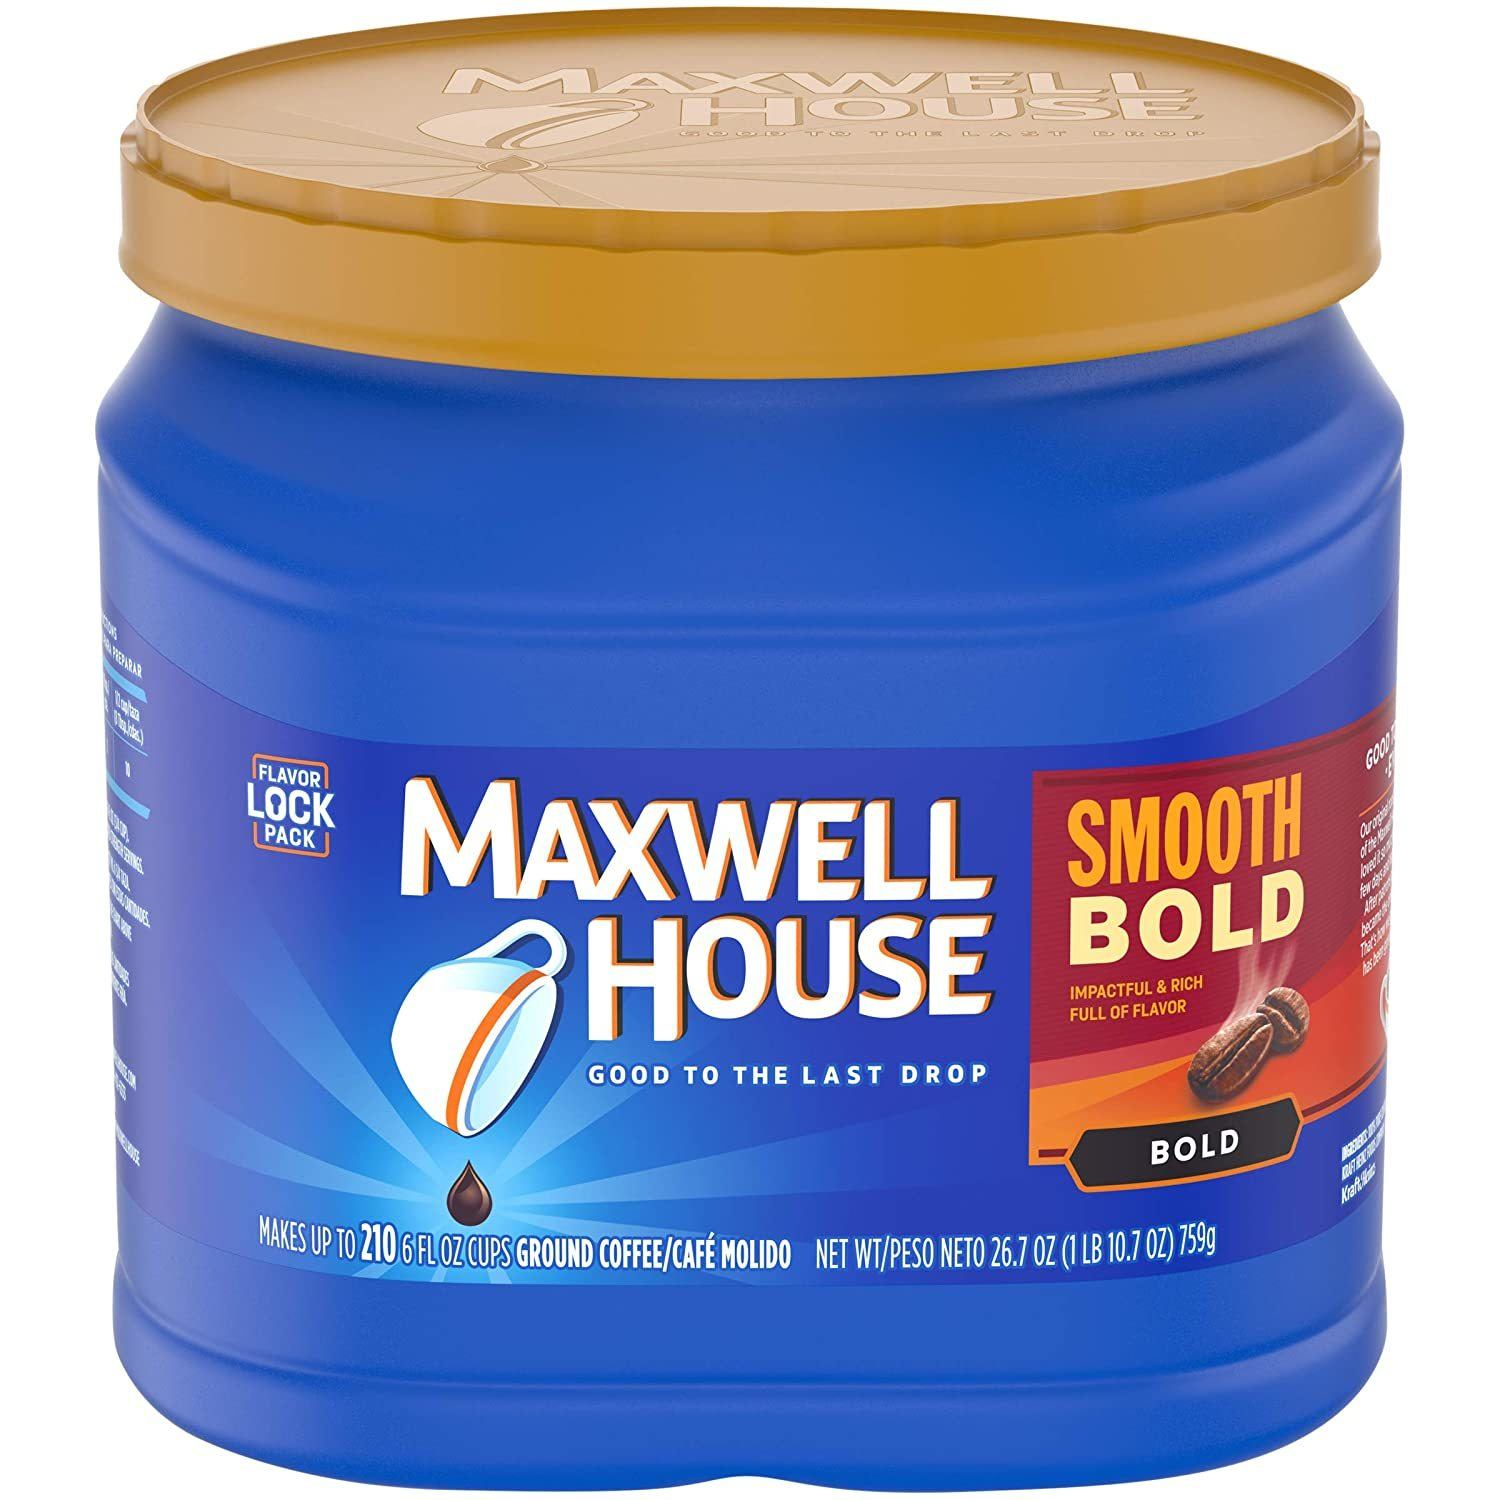 Maxwell House Smooth Bold Roast Ground Coffee